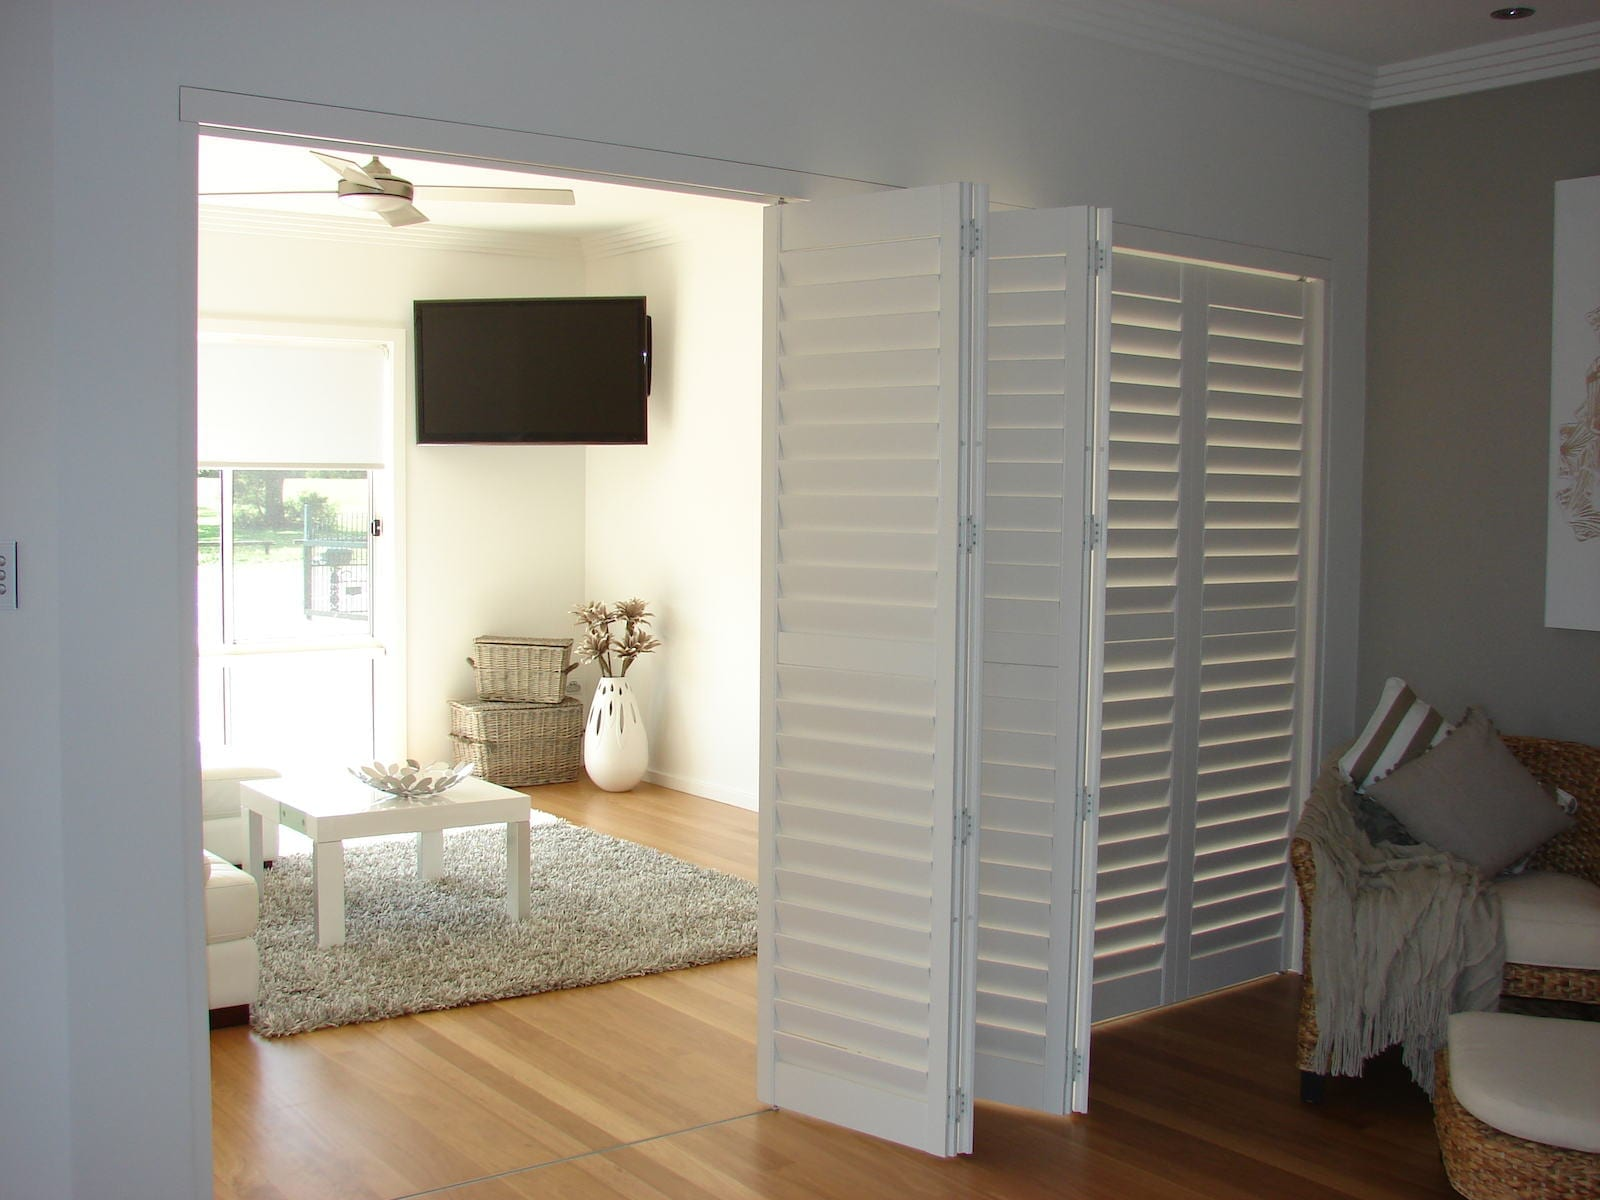 bi-fold-shutters-internal-room-DSC04098